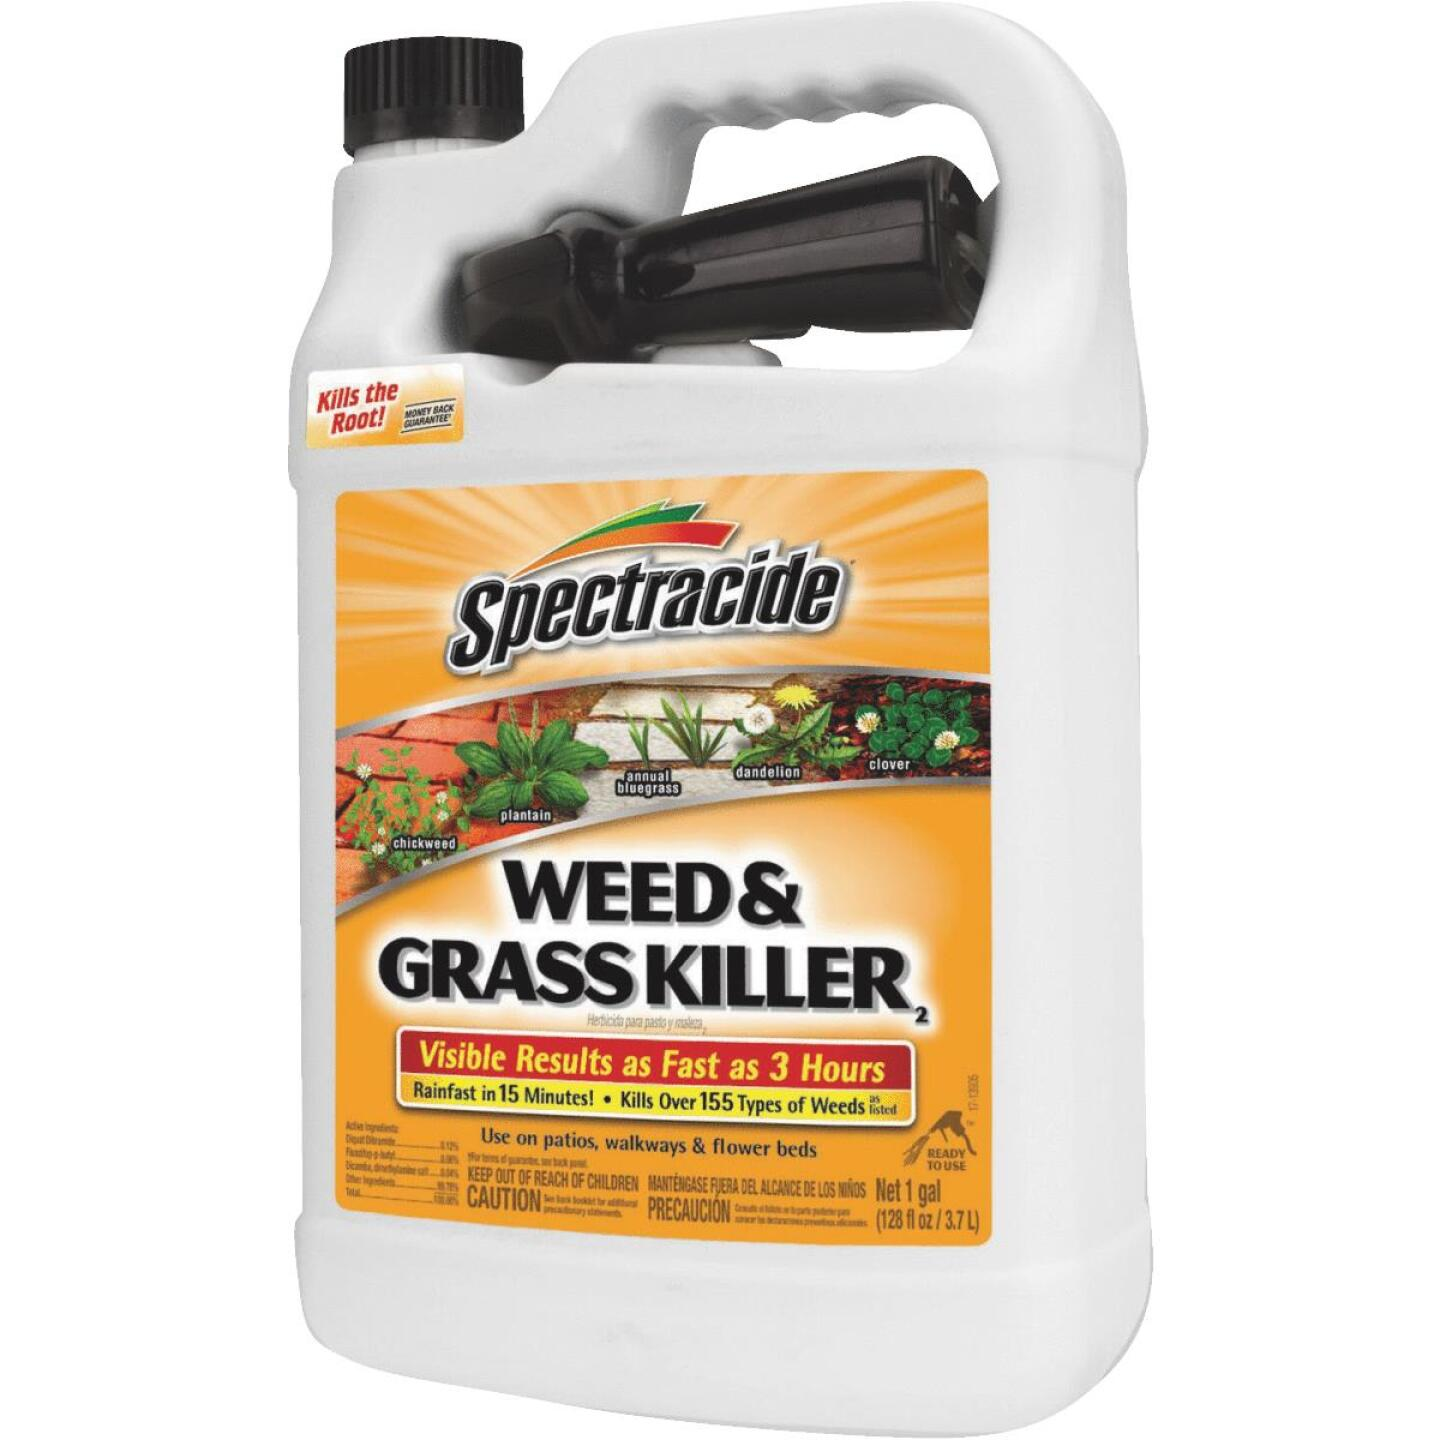 Spectracide 1 Gal. Ready To Use Trigger Spray Weed & Grass Killer Image 1